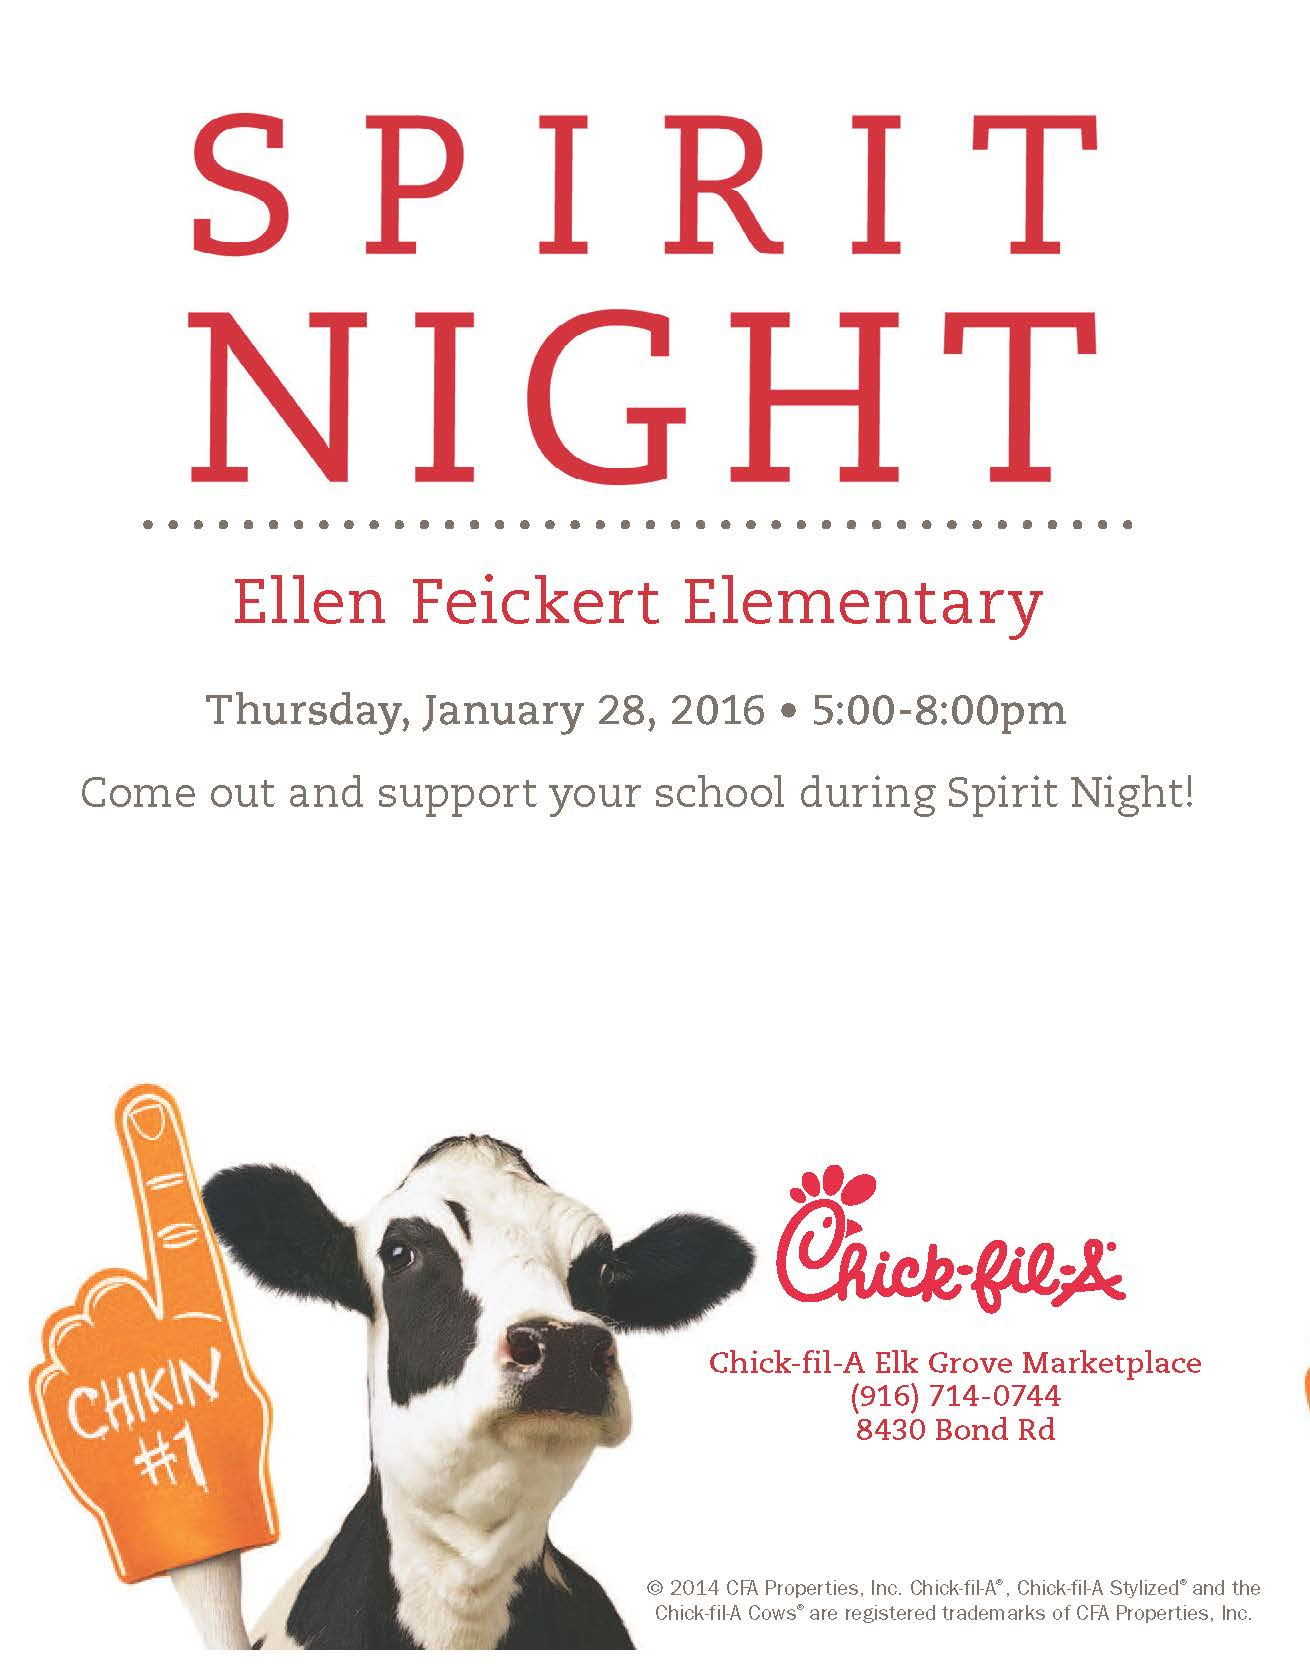 Spirit Night at Chick-fil-A 2016-01-28 : Ellen Feickert Elementary ...